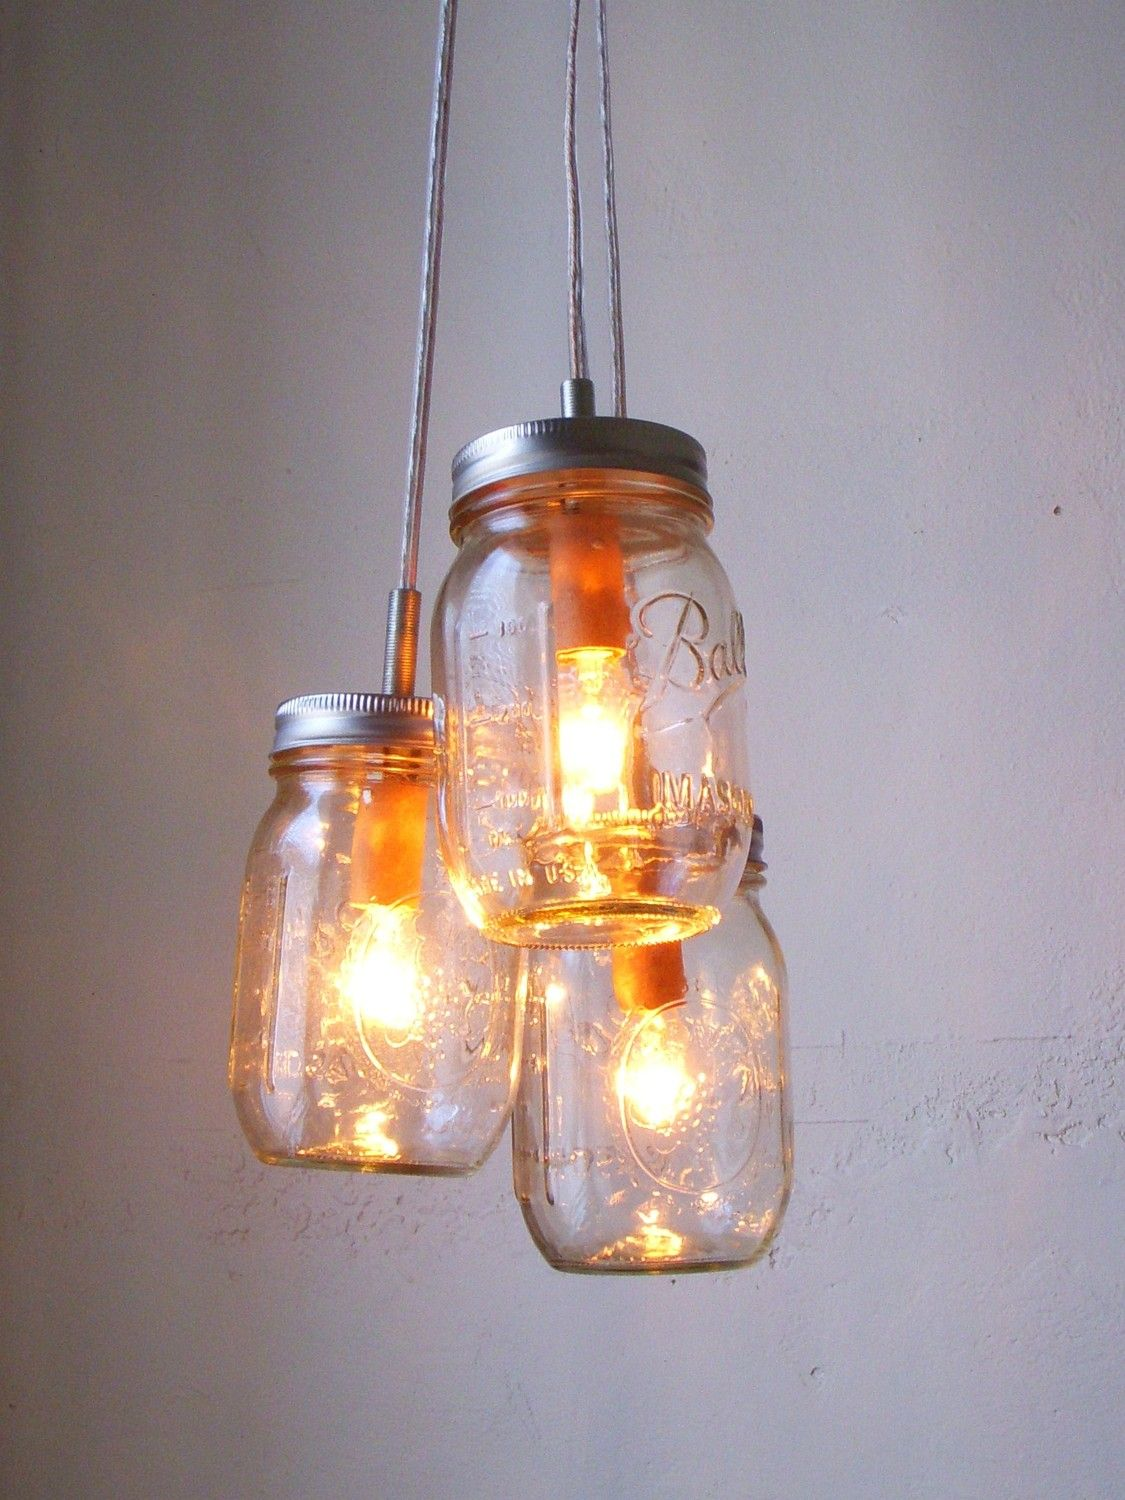 Summer splendor mason jar chandelier hanging pendant light rustic summer splendor mason jar chandelier hanging pendant light rustic wedding upcycled lighting bootsngus lamp aloadofball Gallery